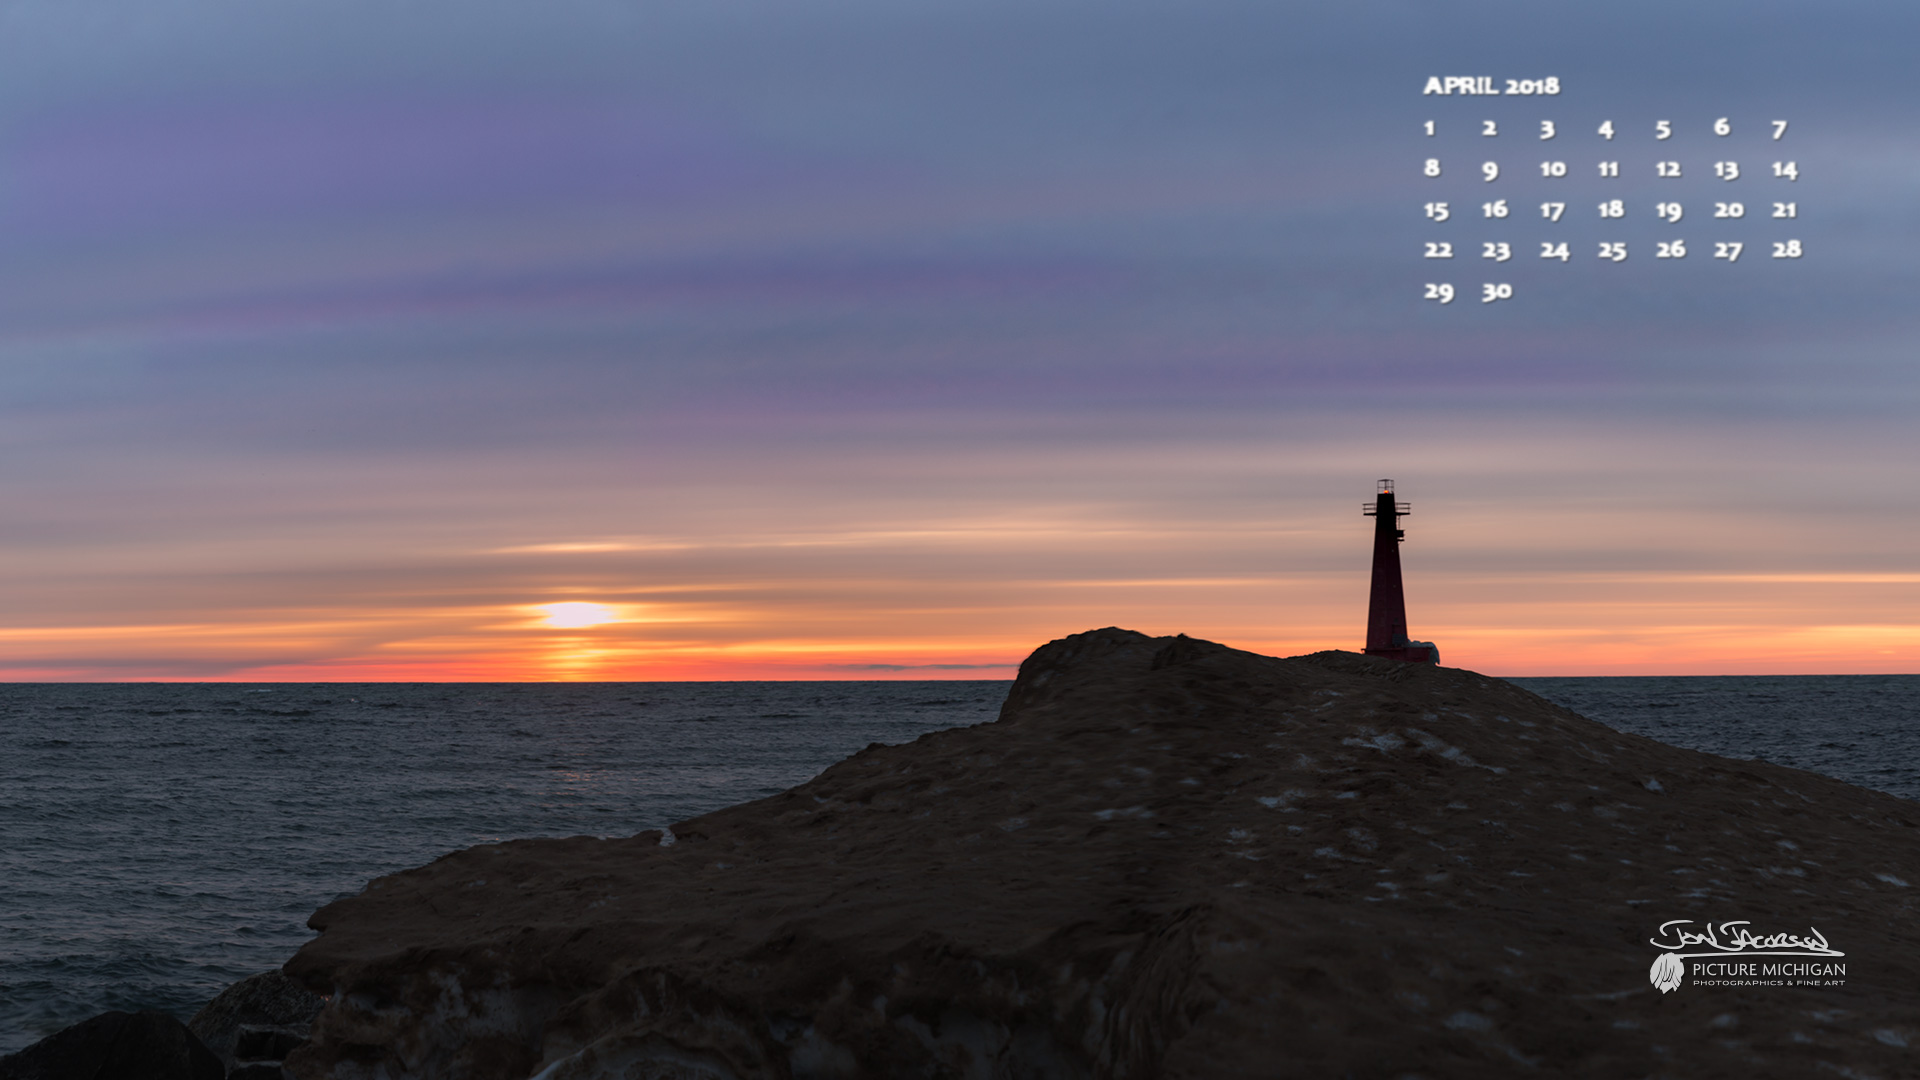 April 2018 Desktop Calendar Wallpaper - Lake Michigan